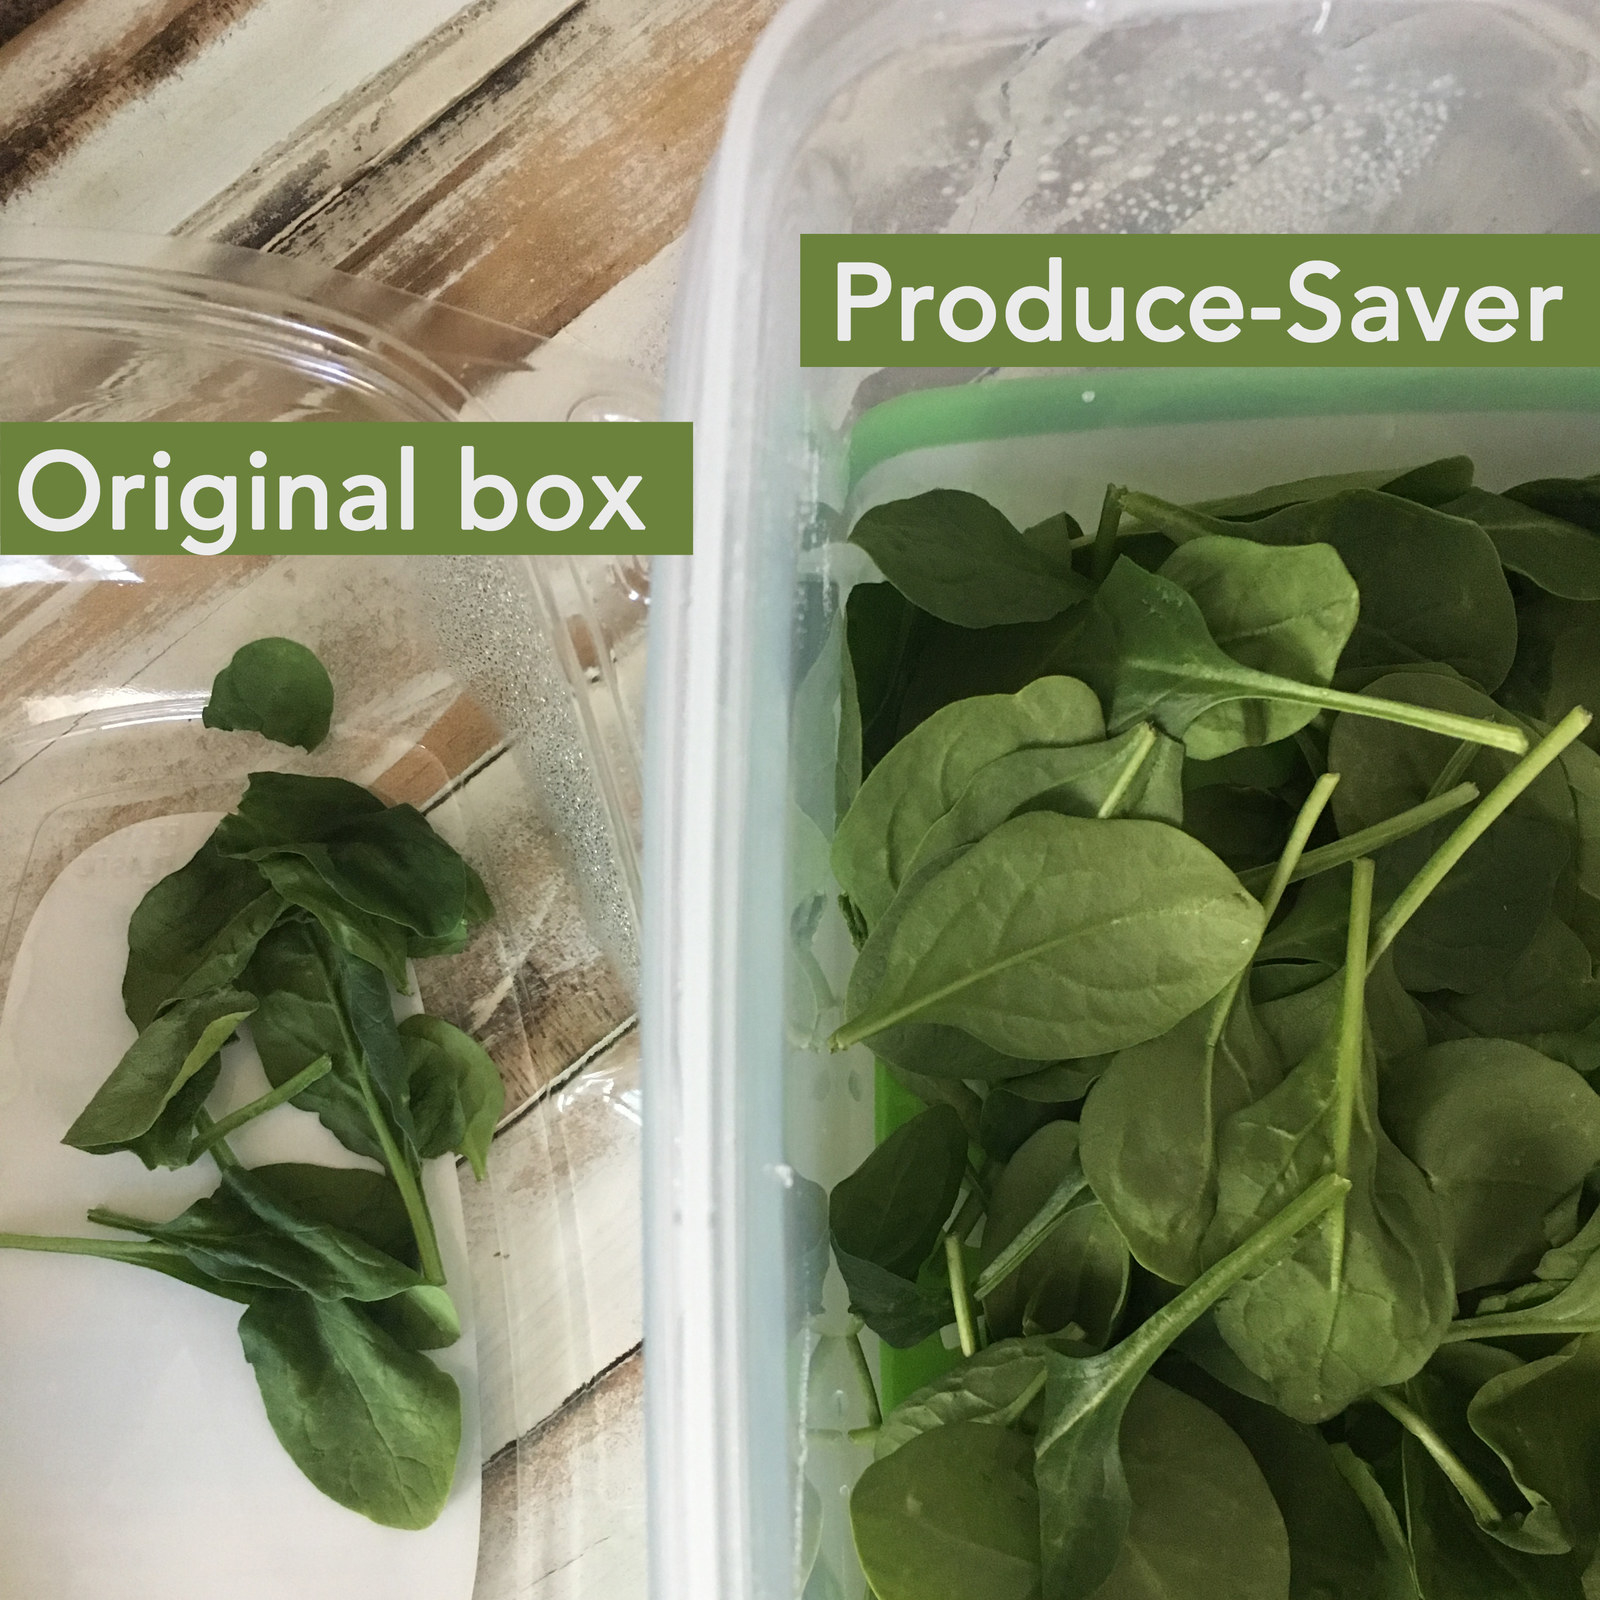 original box of spinach with a few wilted pieces next to produce saver, where spinach looks fresh and crisp